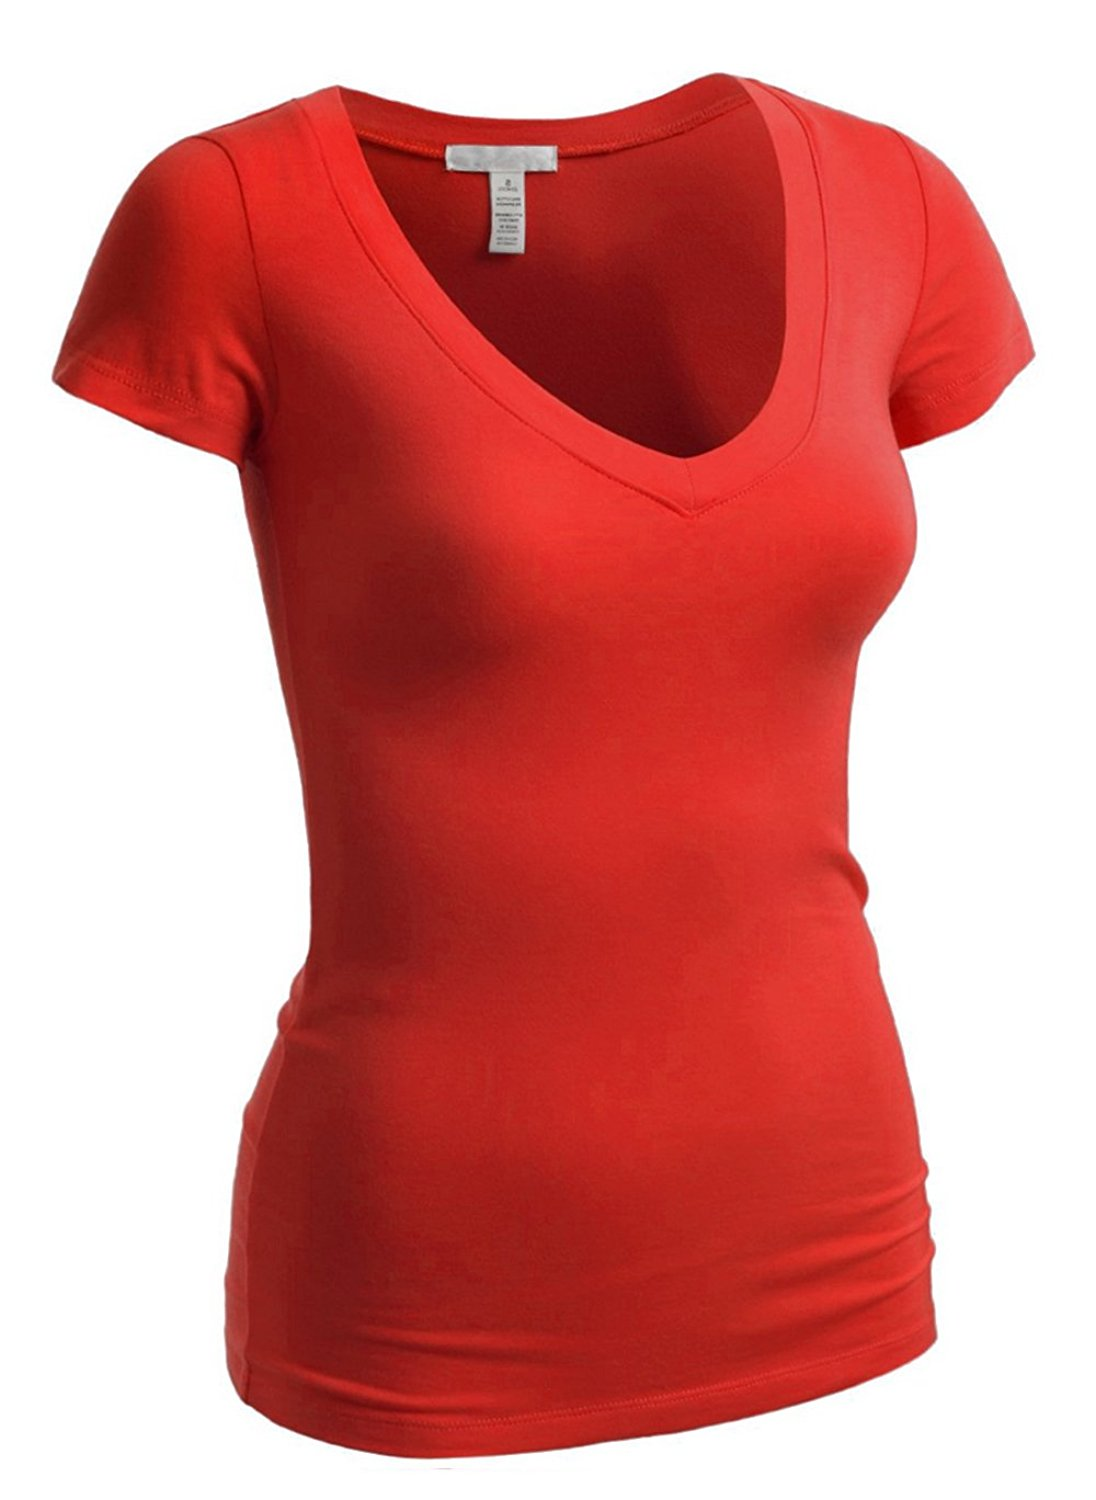 Short Sleeve V-neck Tee Tank Top Shirt Cotton (Medium, Red)